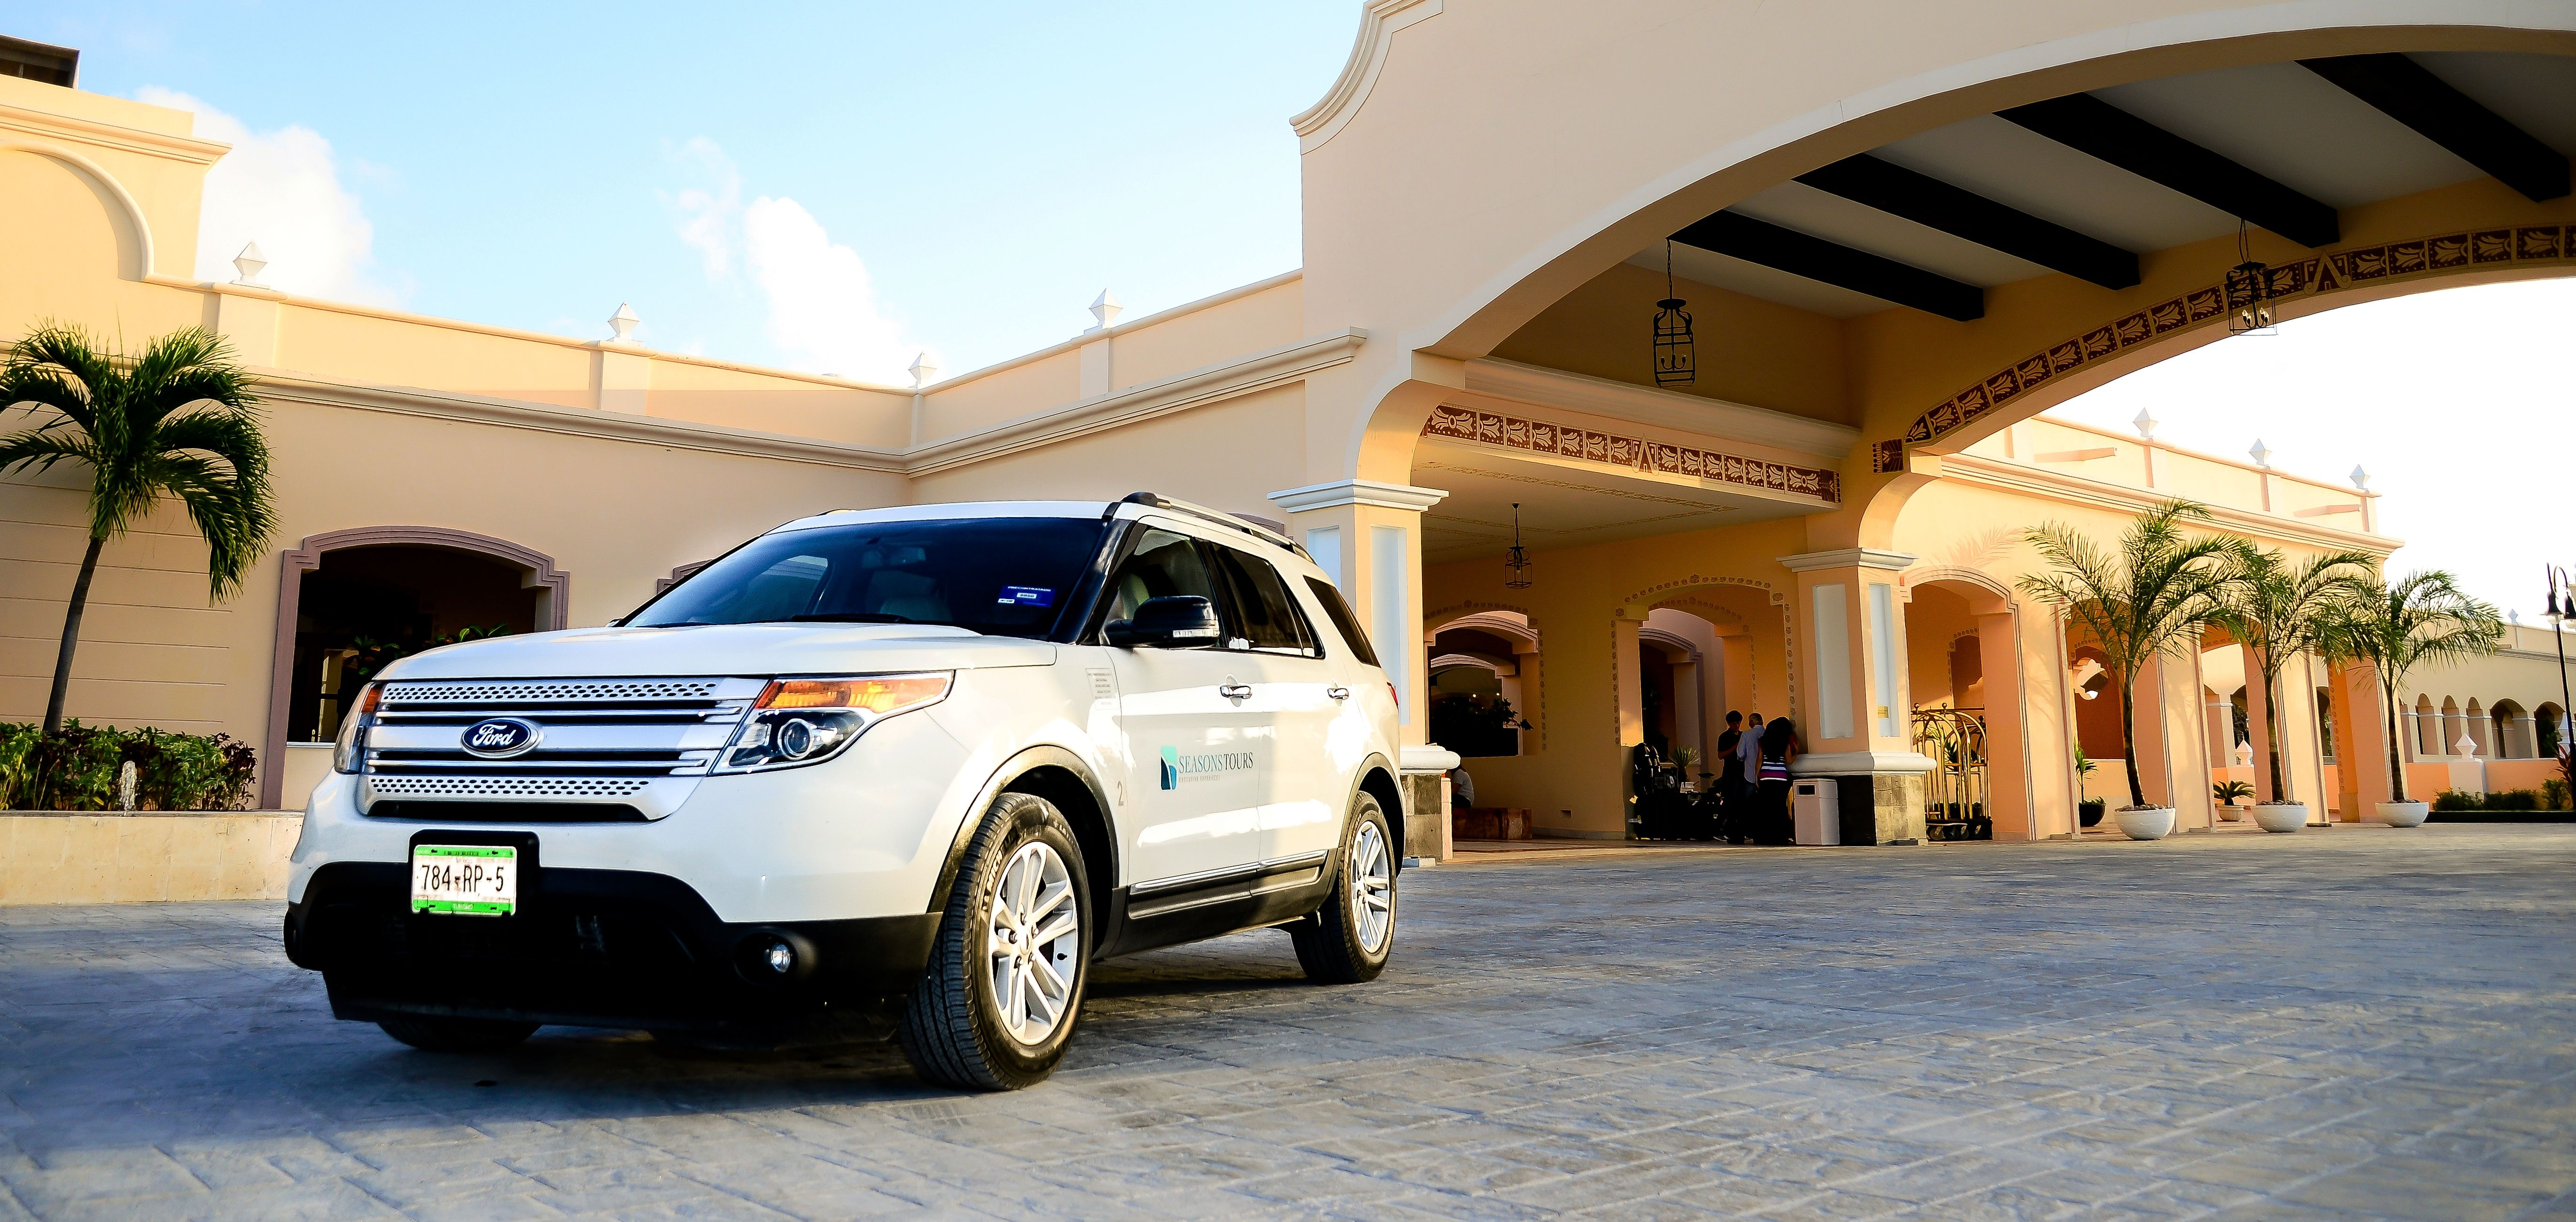 Ensure your DELUXE private airport transportation and travel in style with our modern deluxe SUV fleet. Available at Excellence Punta Cana, Excellence Playa Mujeres, Excellence Riviera Cancun and The Beloved Hotel